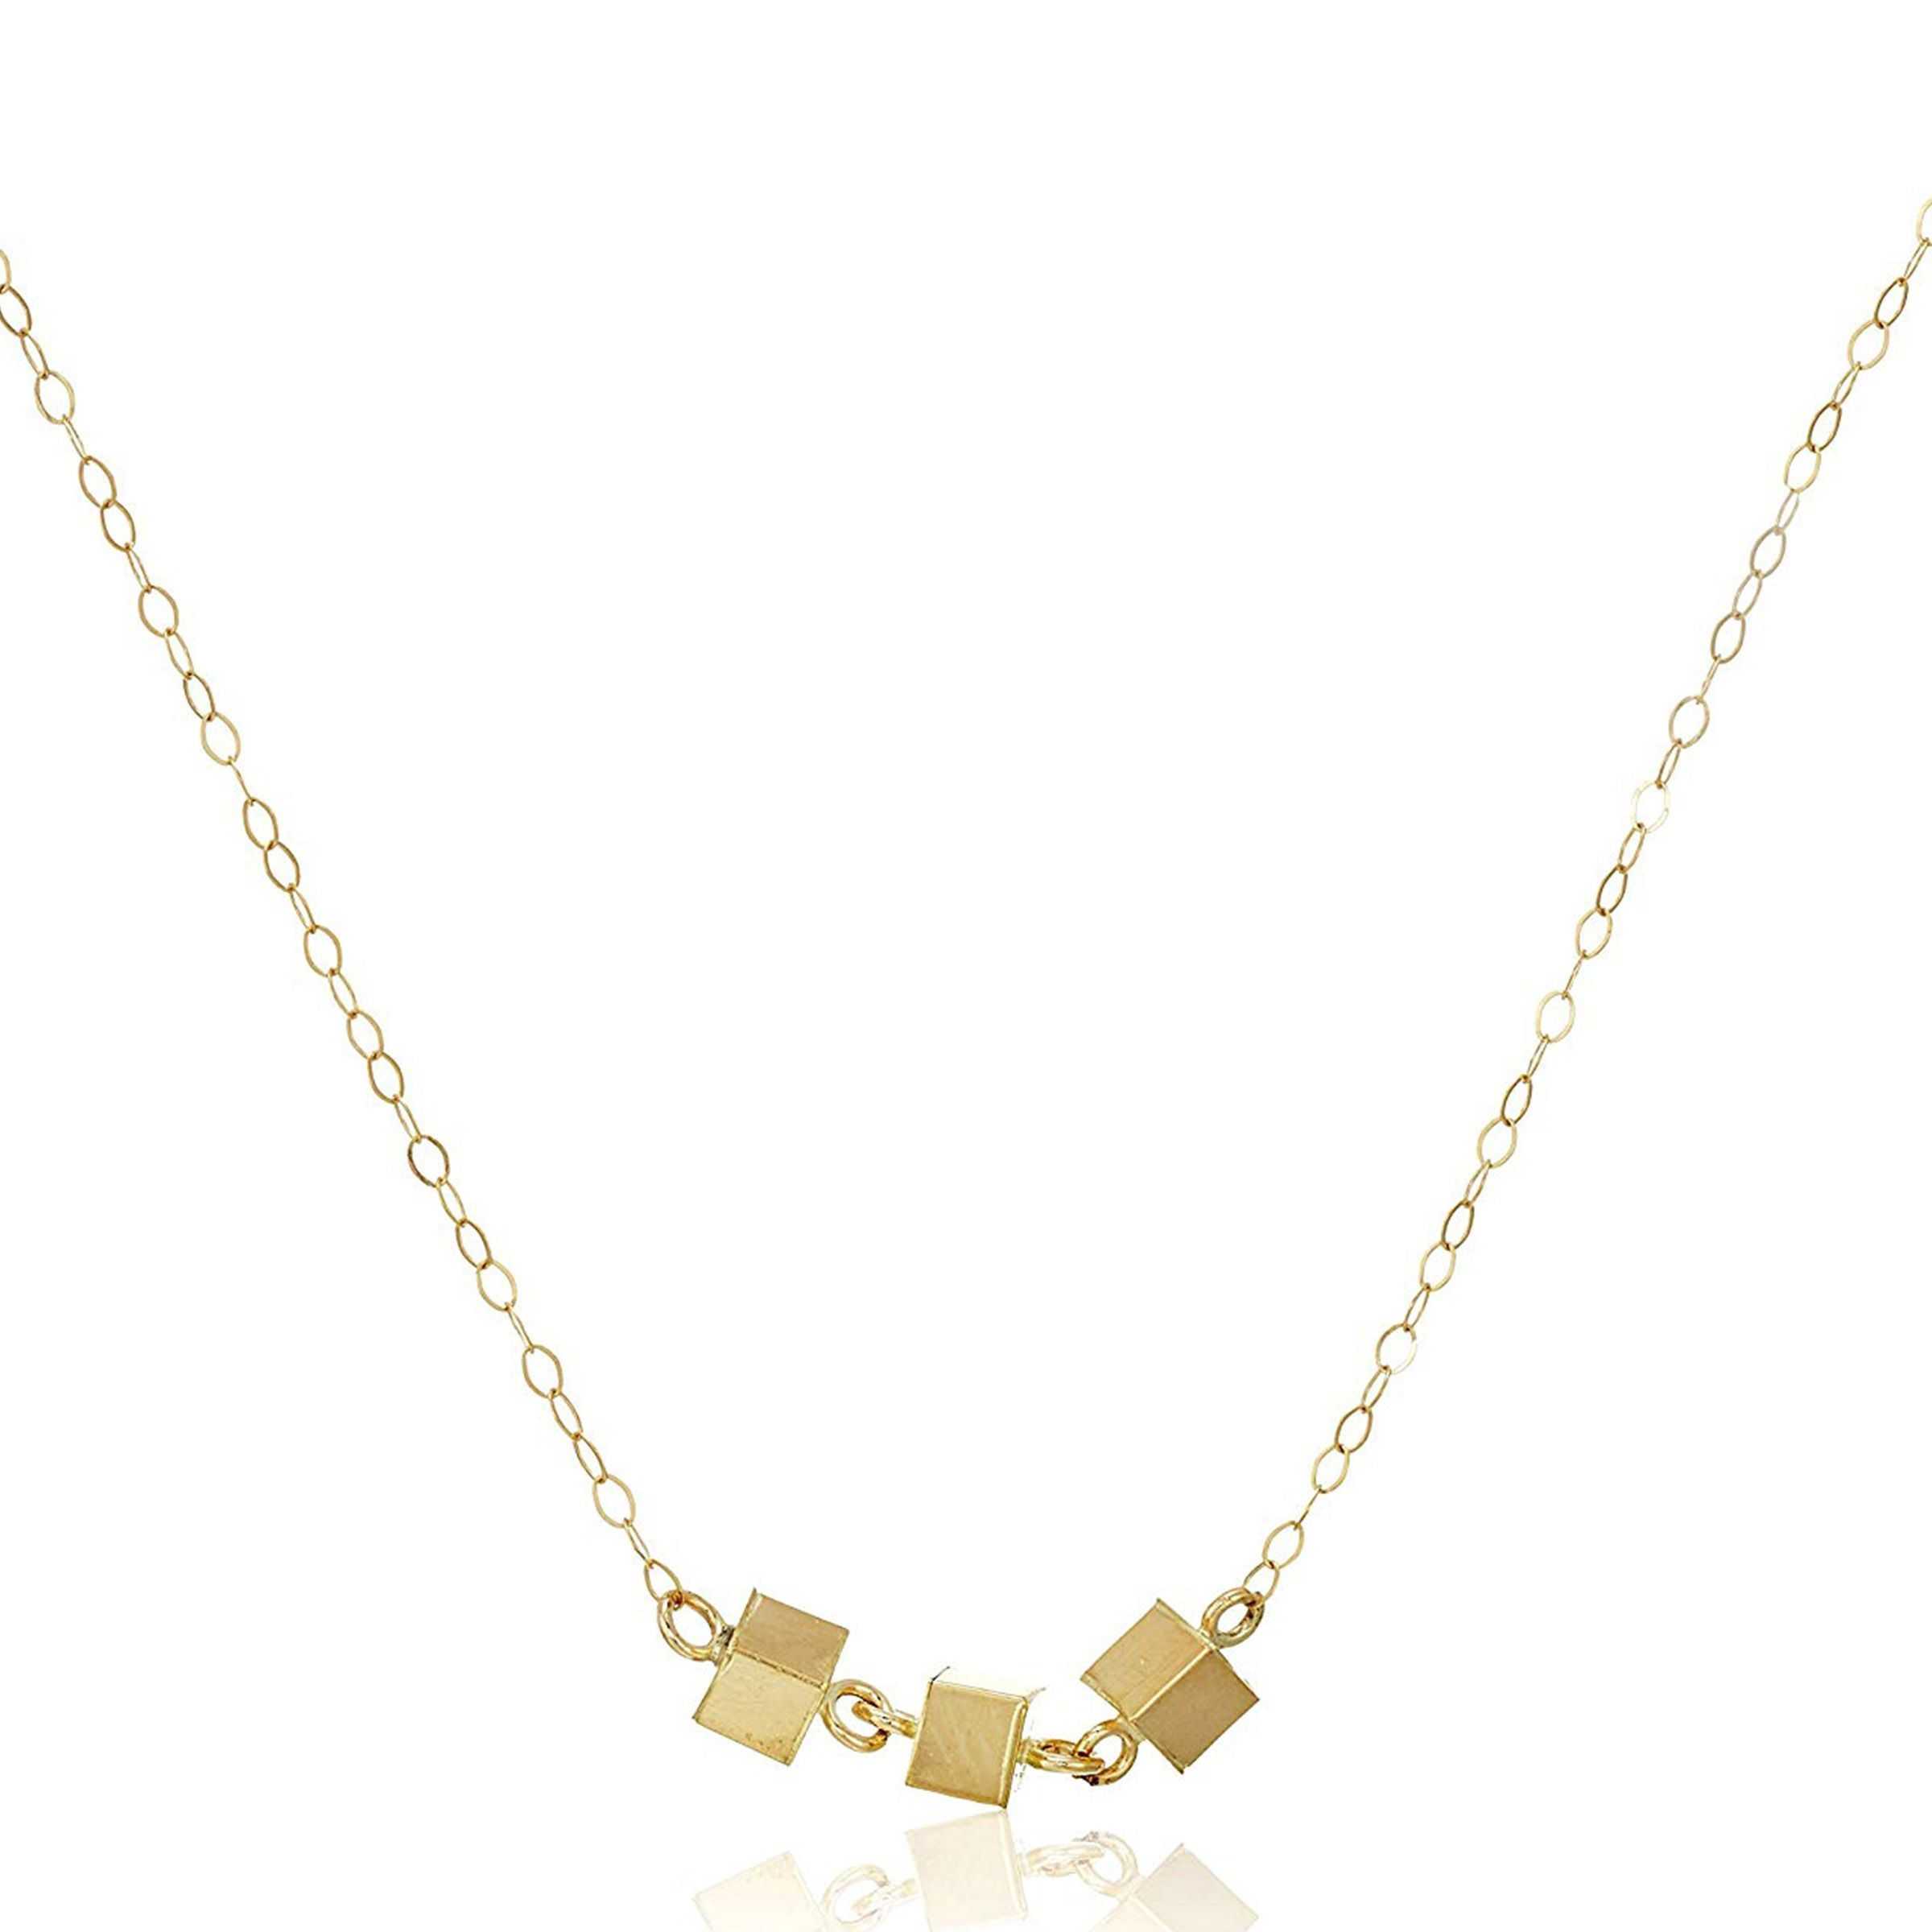 Eternity Gold Beaded Bib Necklace in 10K Gold